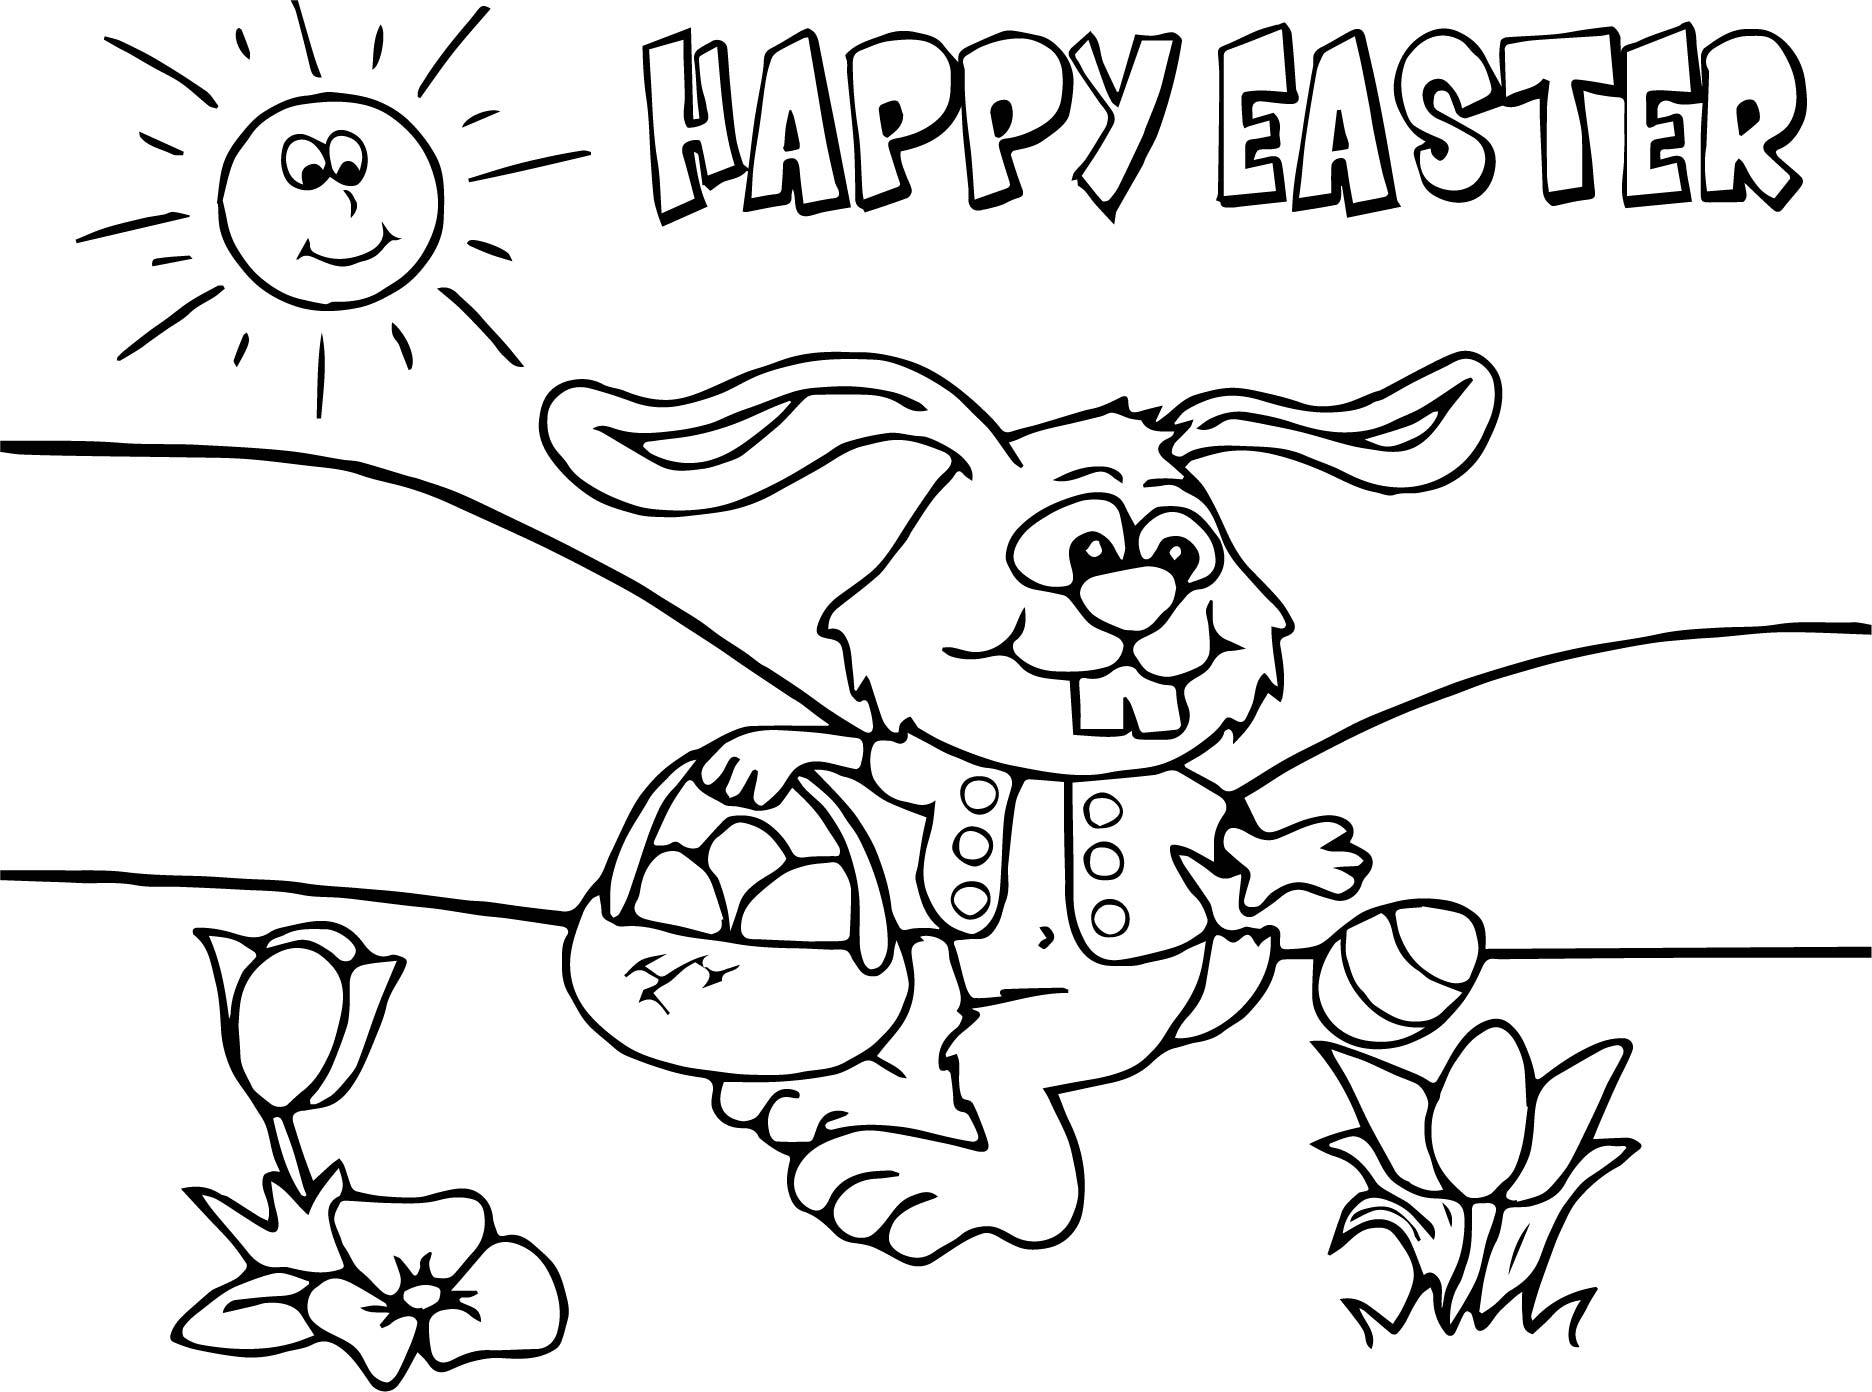 happybunny coloring pages | Happy Easter Bunny Cartoon Funny Coloring Page ...